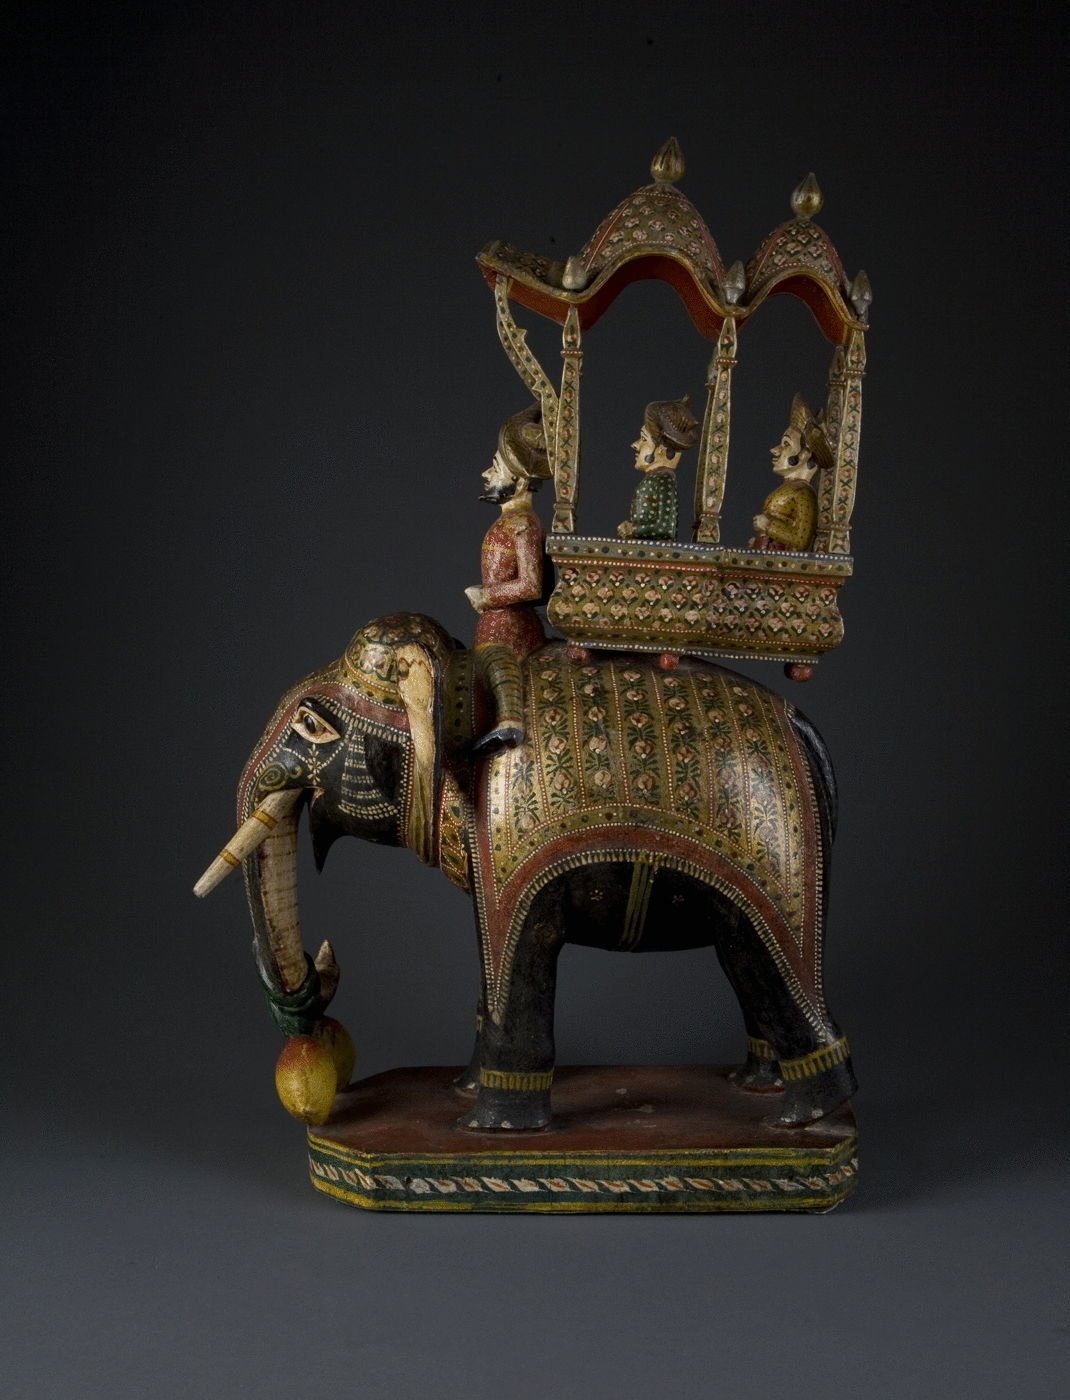 17.  A Polychrome Carved Wood Elephant With Mahout